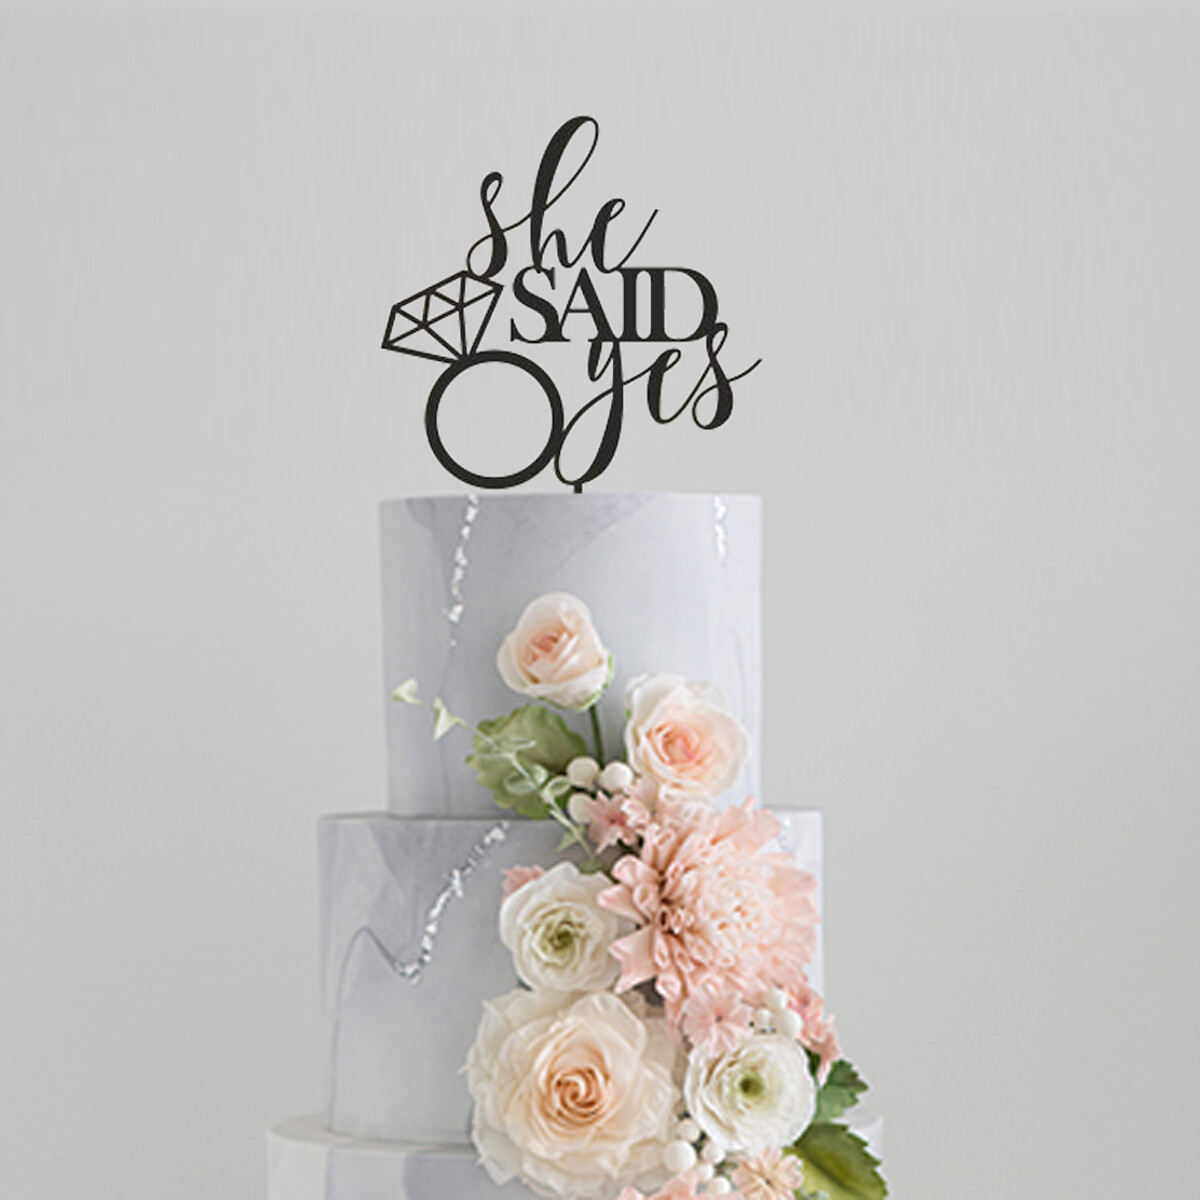 She Said Yes Cake Topper, Bridal Shower, Engagement Party Decoration